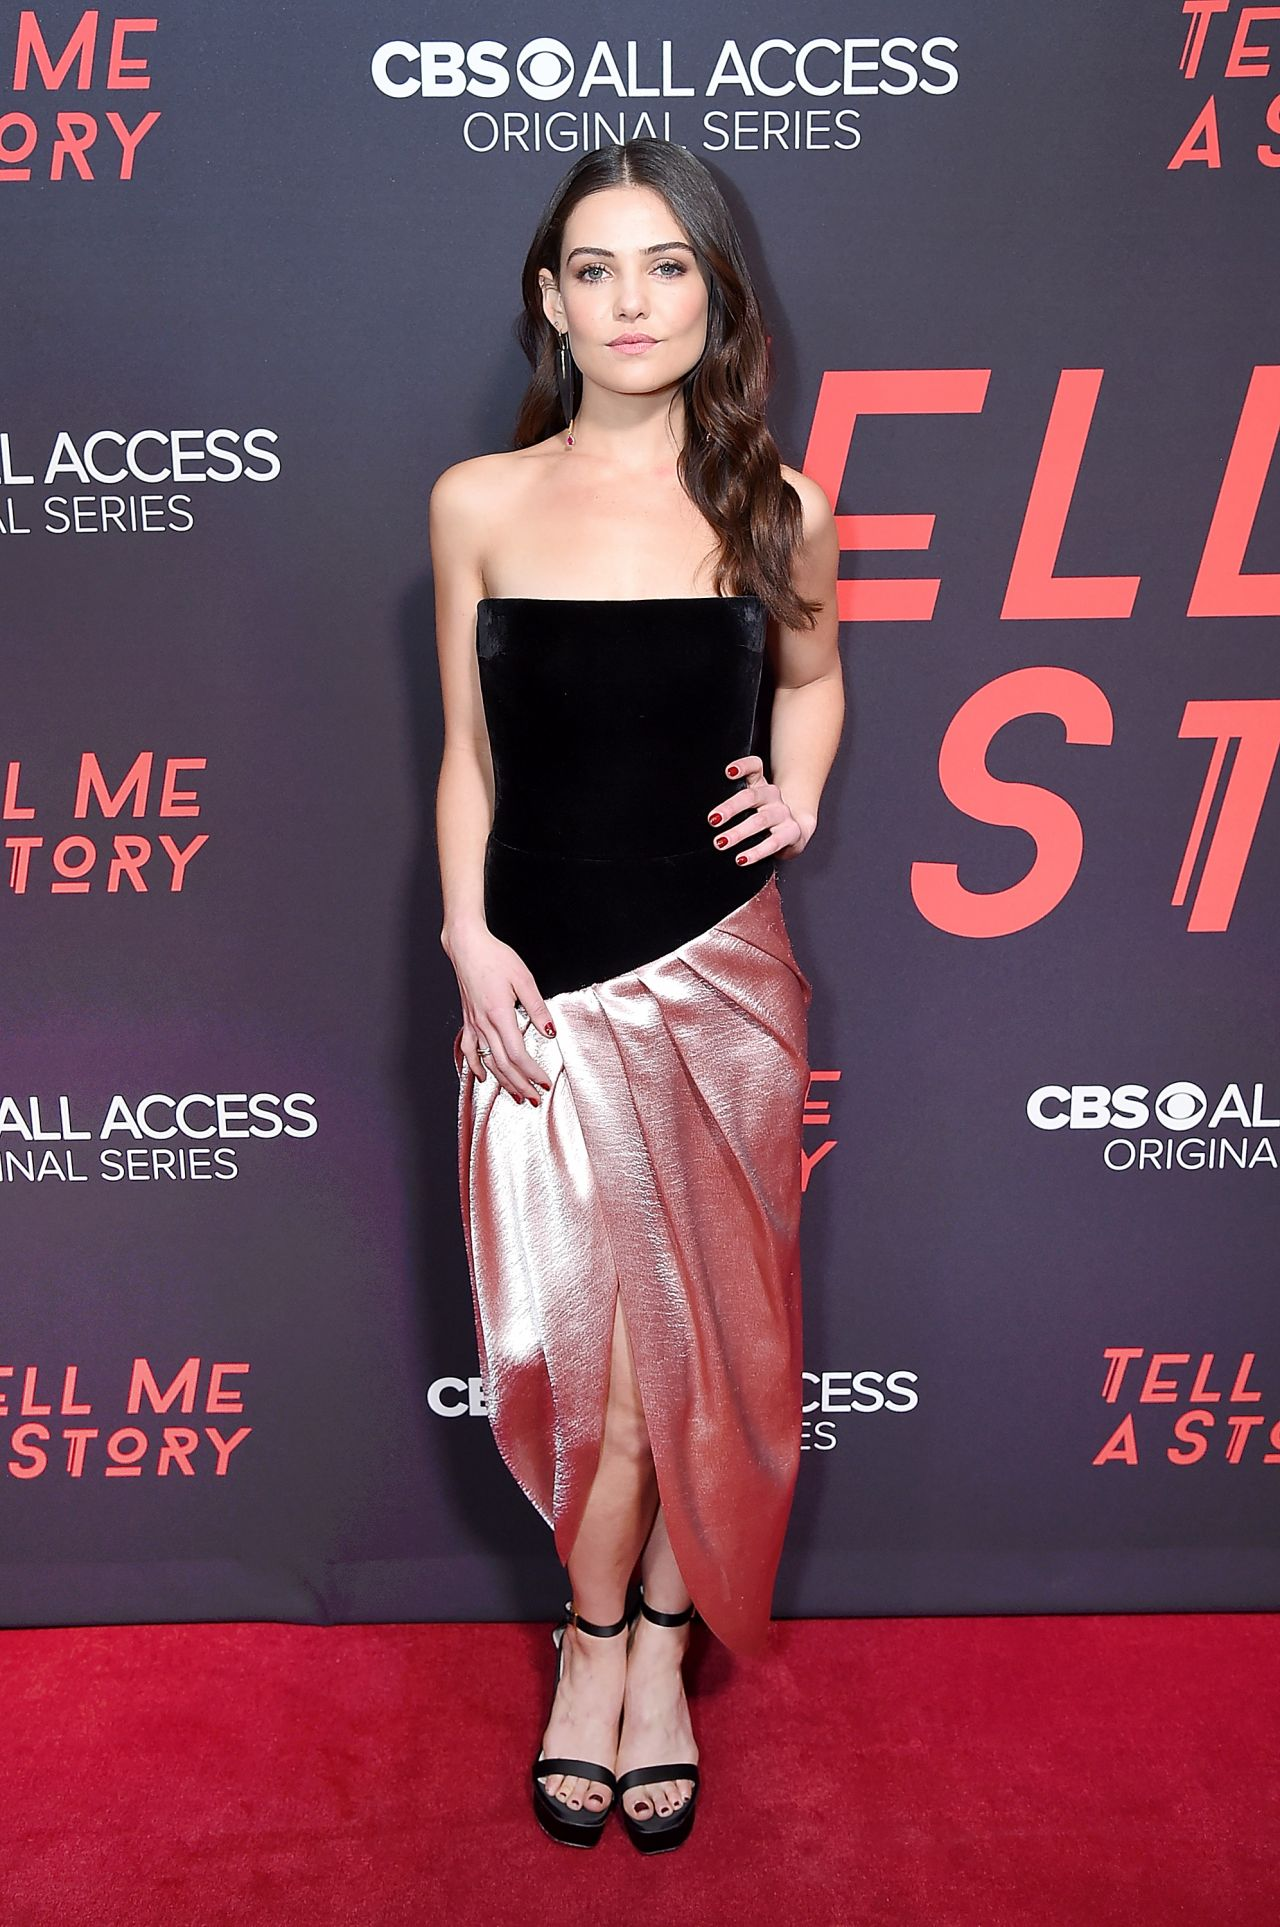 Danielle Campbell Tell Me A Story Quot Premiere In Nyc